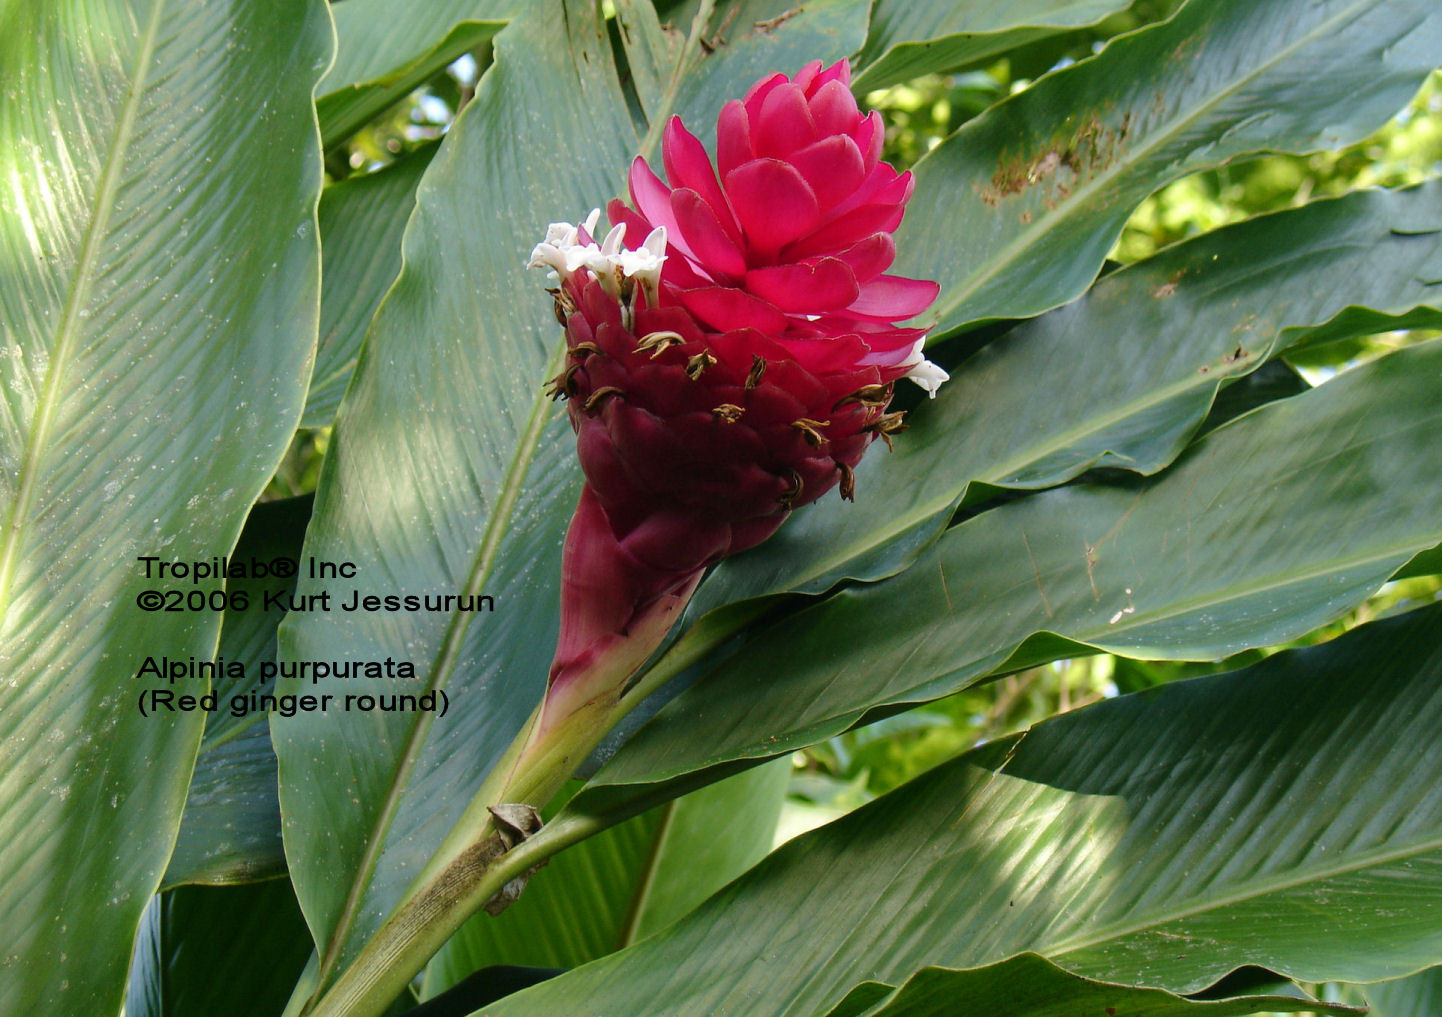 Alpinia purpurata, Red ginger round